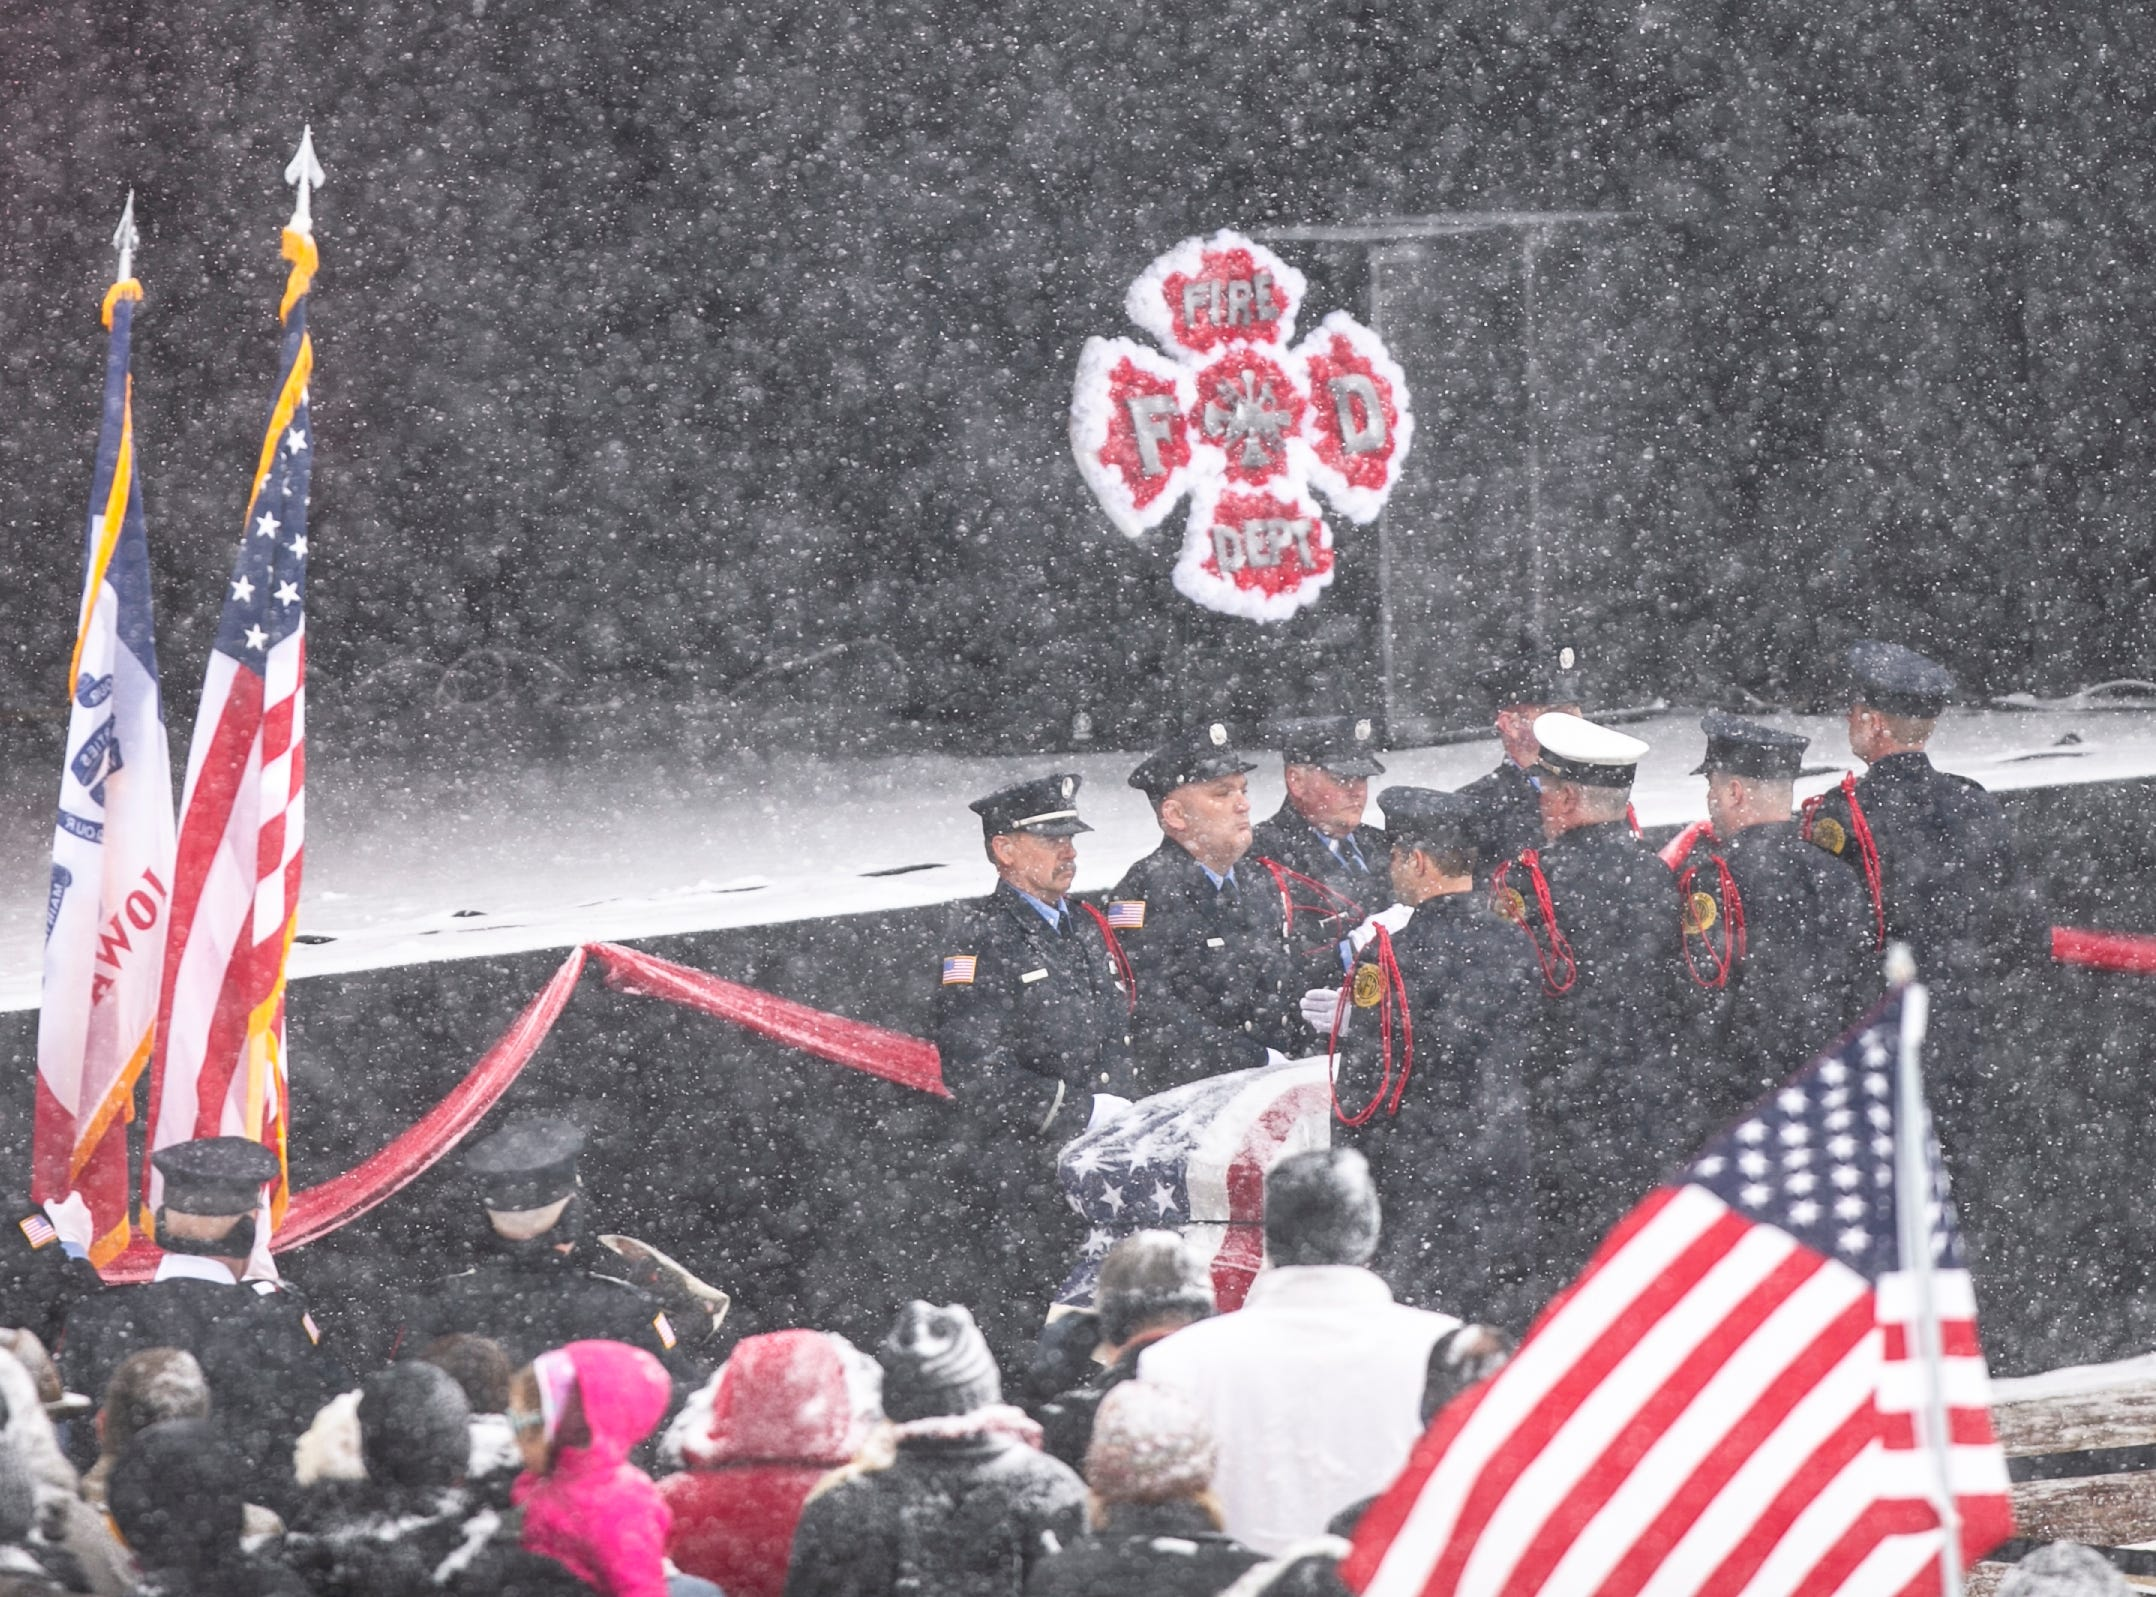 Pallbearers from the Clinton Fire Department carry the casket of Lt. Eric Hosette in during a public memorial service on Saturday, Jan. 12, 2019, at Riverview Park Bandshell in Clinton, Iowa.